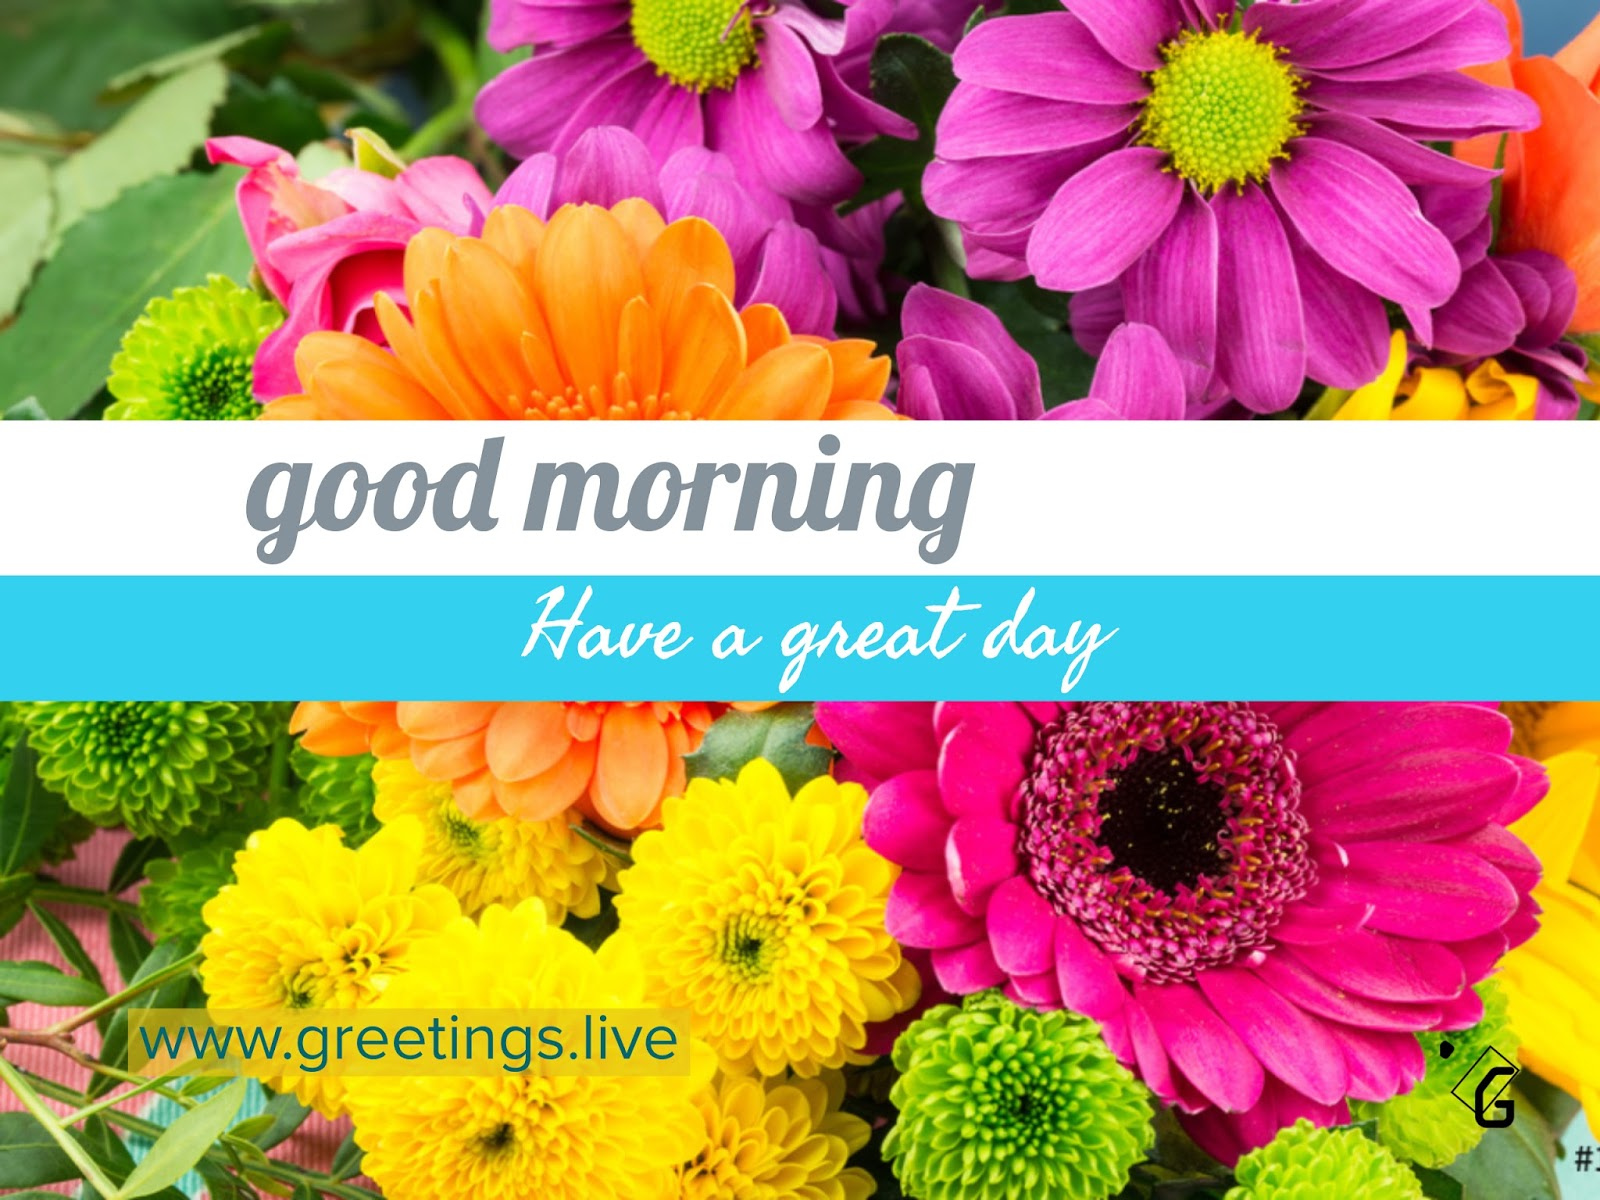 Good Morning Greetings With Flowers Flowers Online 2018 Flowers